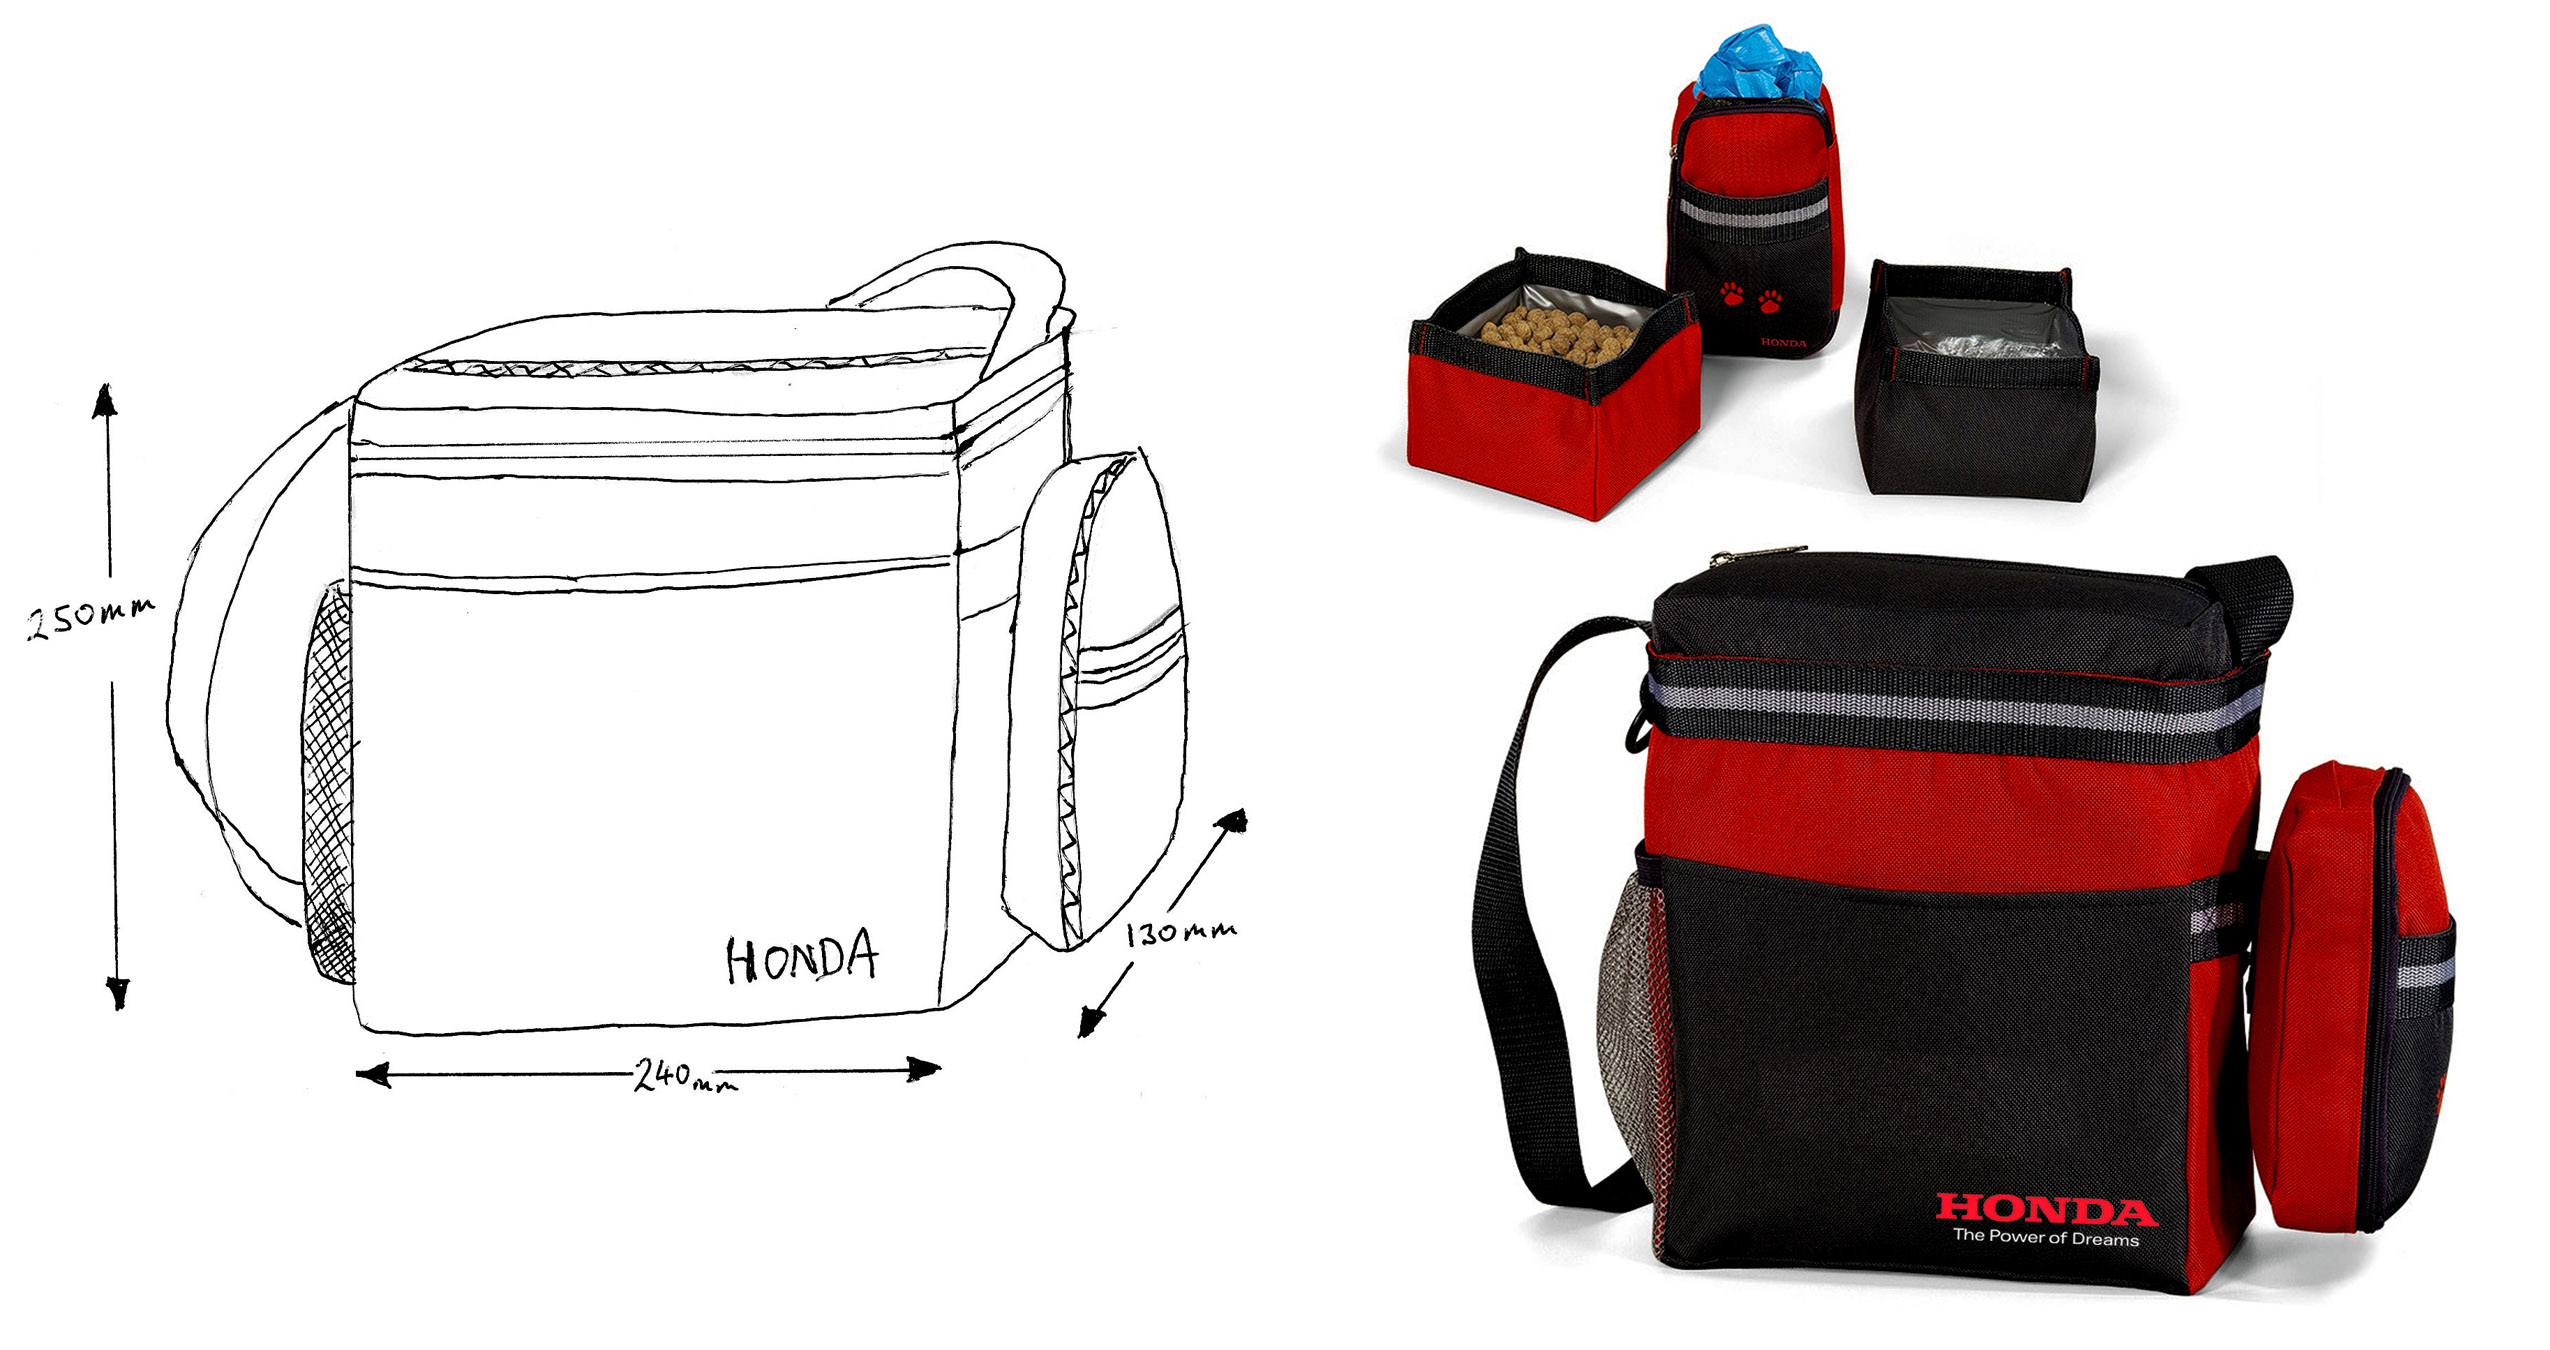 Honda Dog travel kit bag